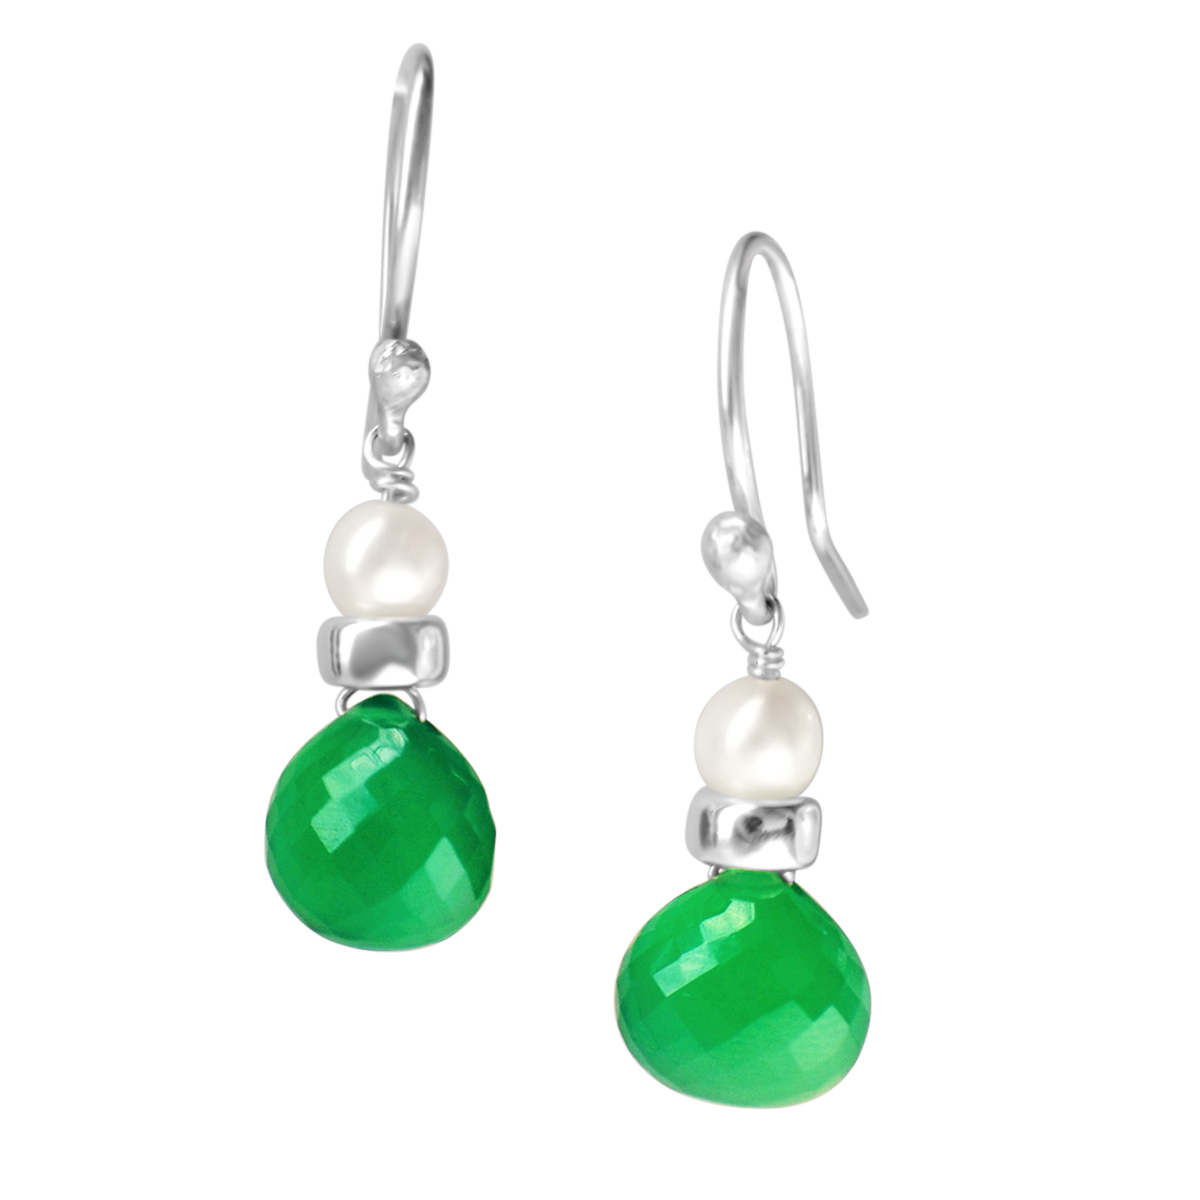 Perfume Bottle green onyx earrings